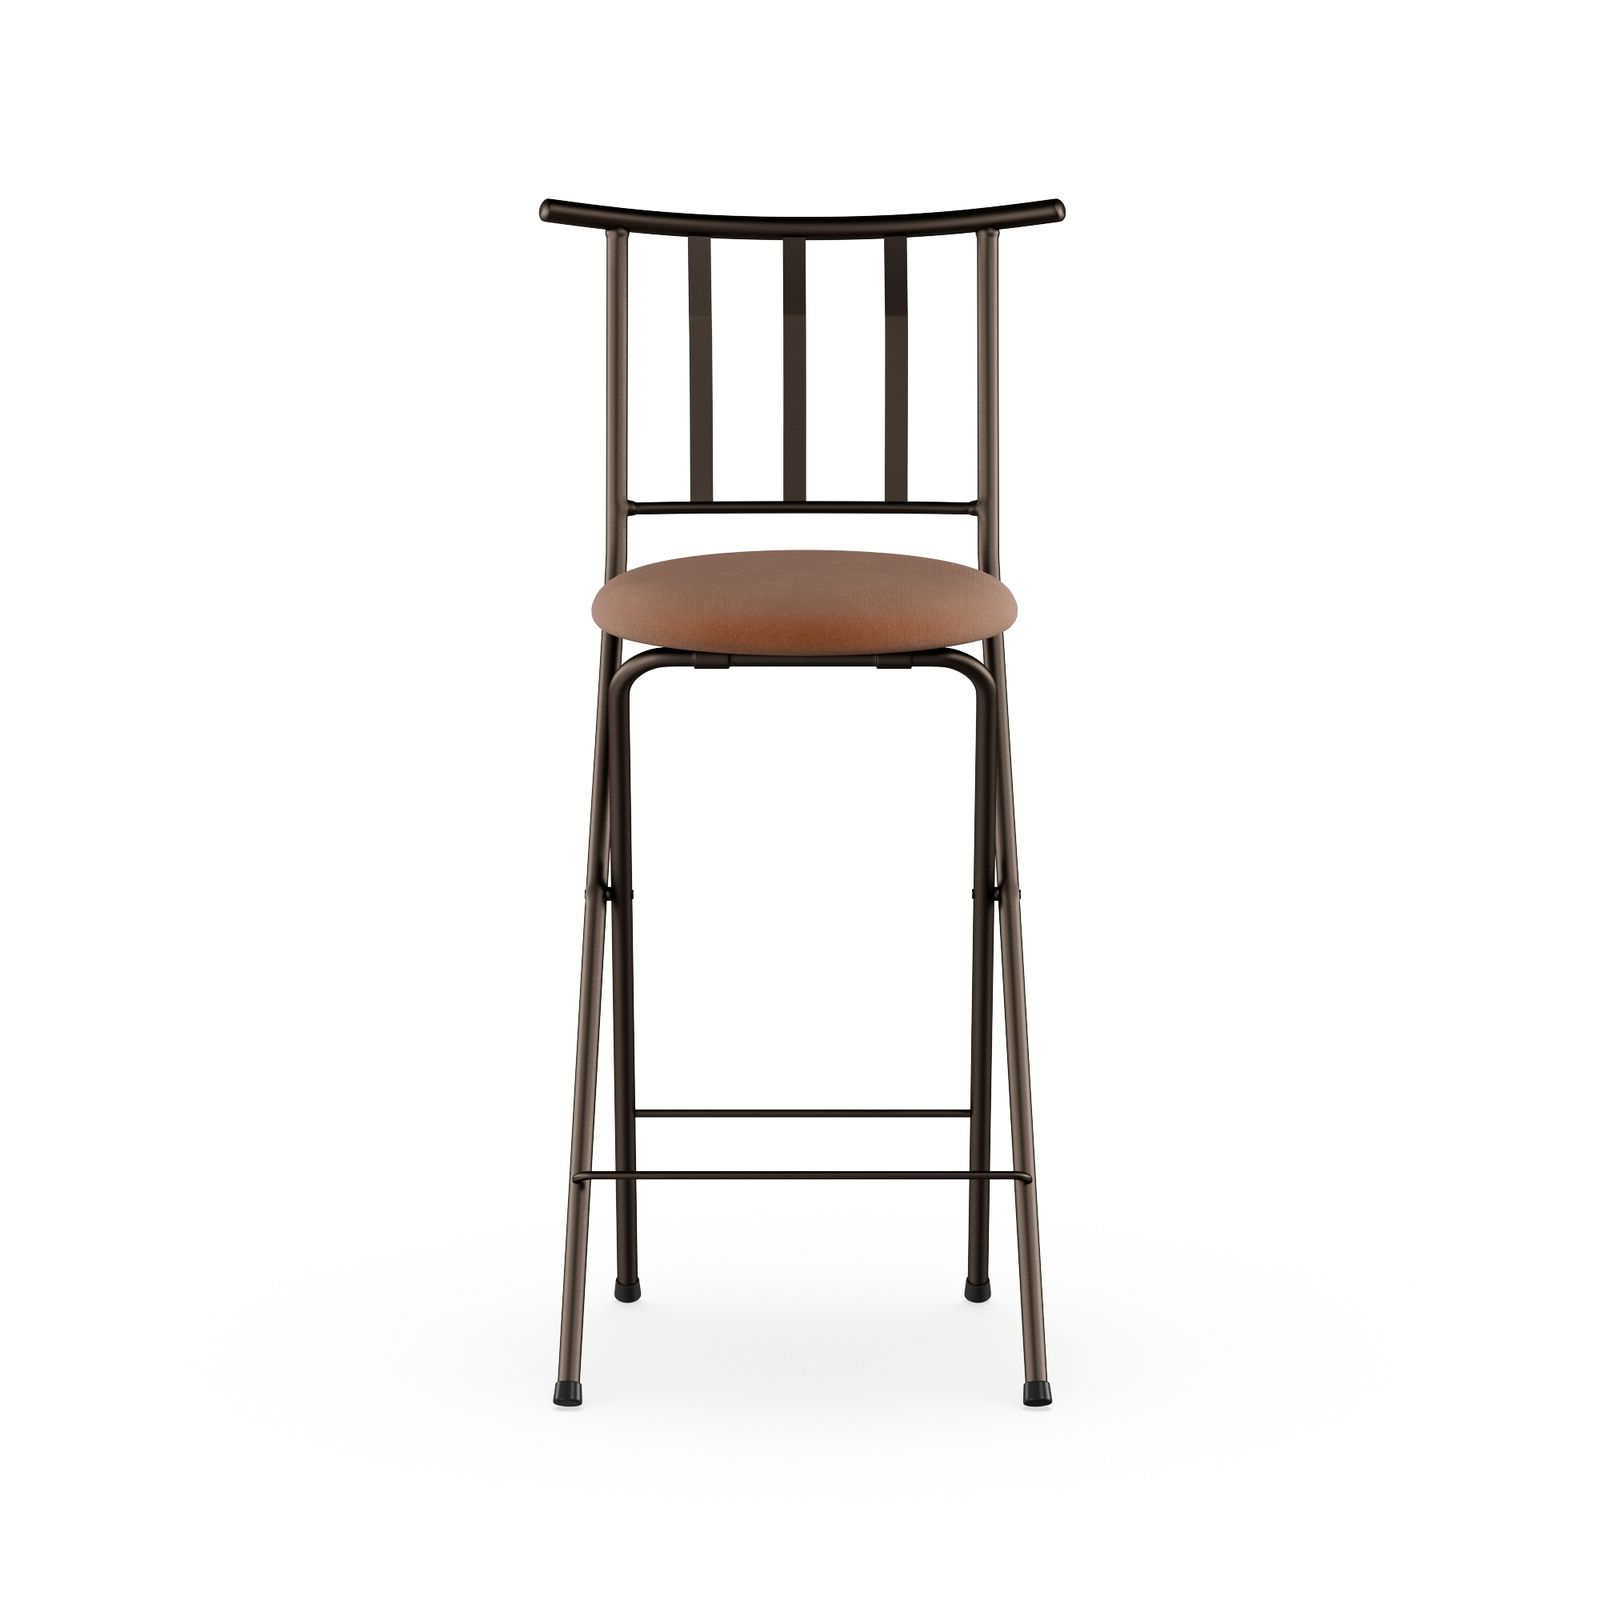 "Mainstays Slat Back Folding 30"" Bronze Bar Stool Multiple Colors Pertaining To Latest Tillia Ceramic Garden Stools (View 29 of 30)"